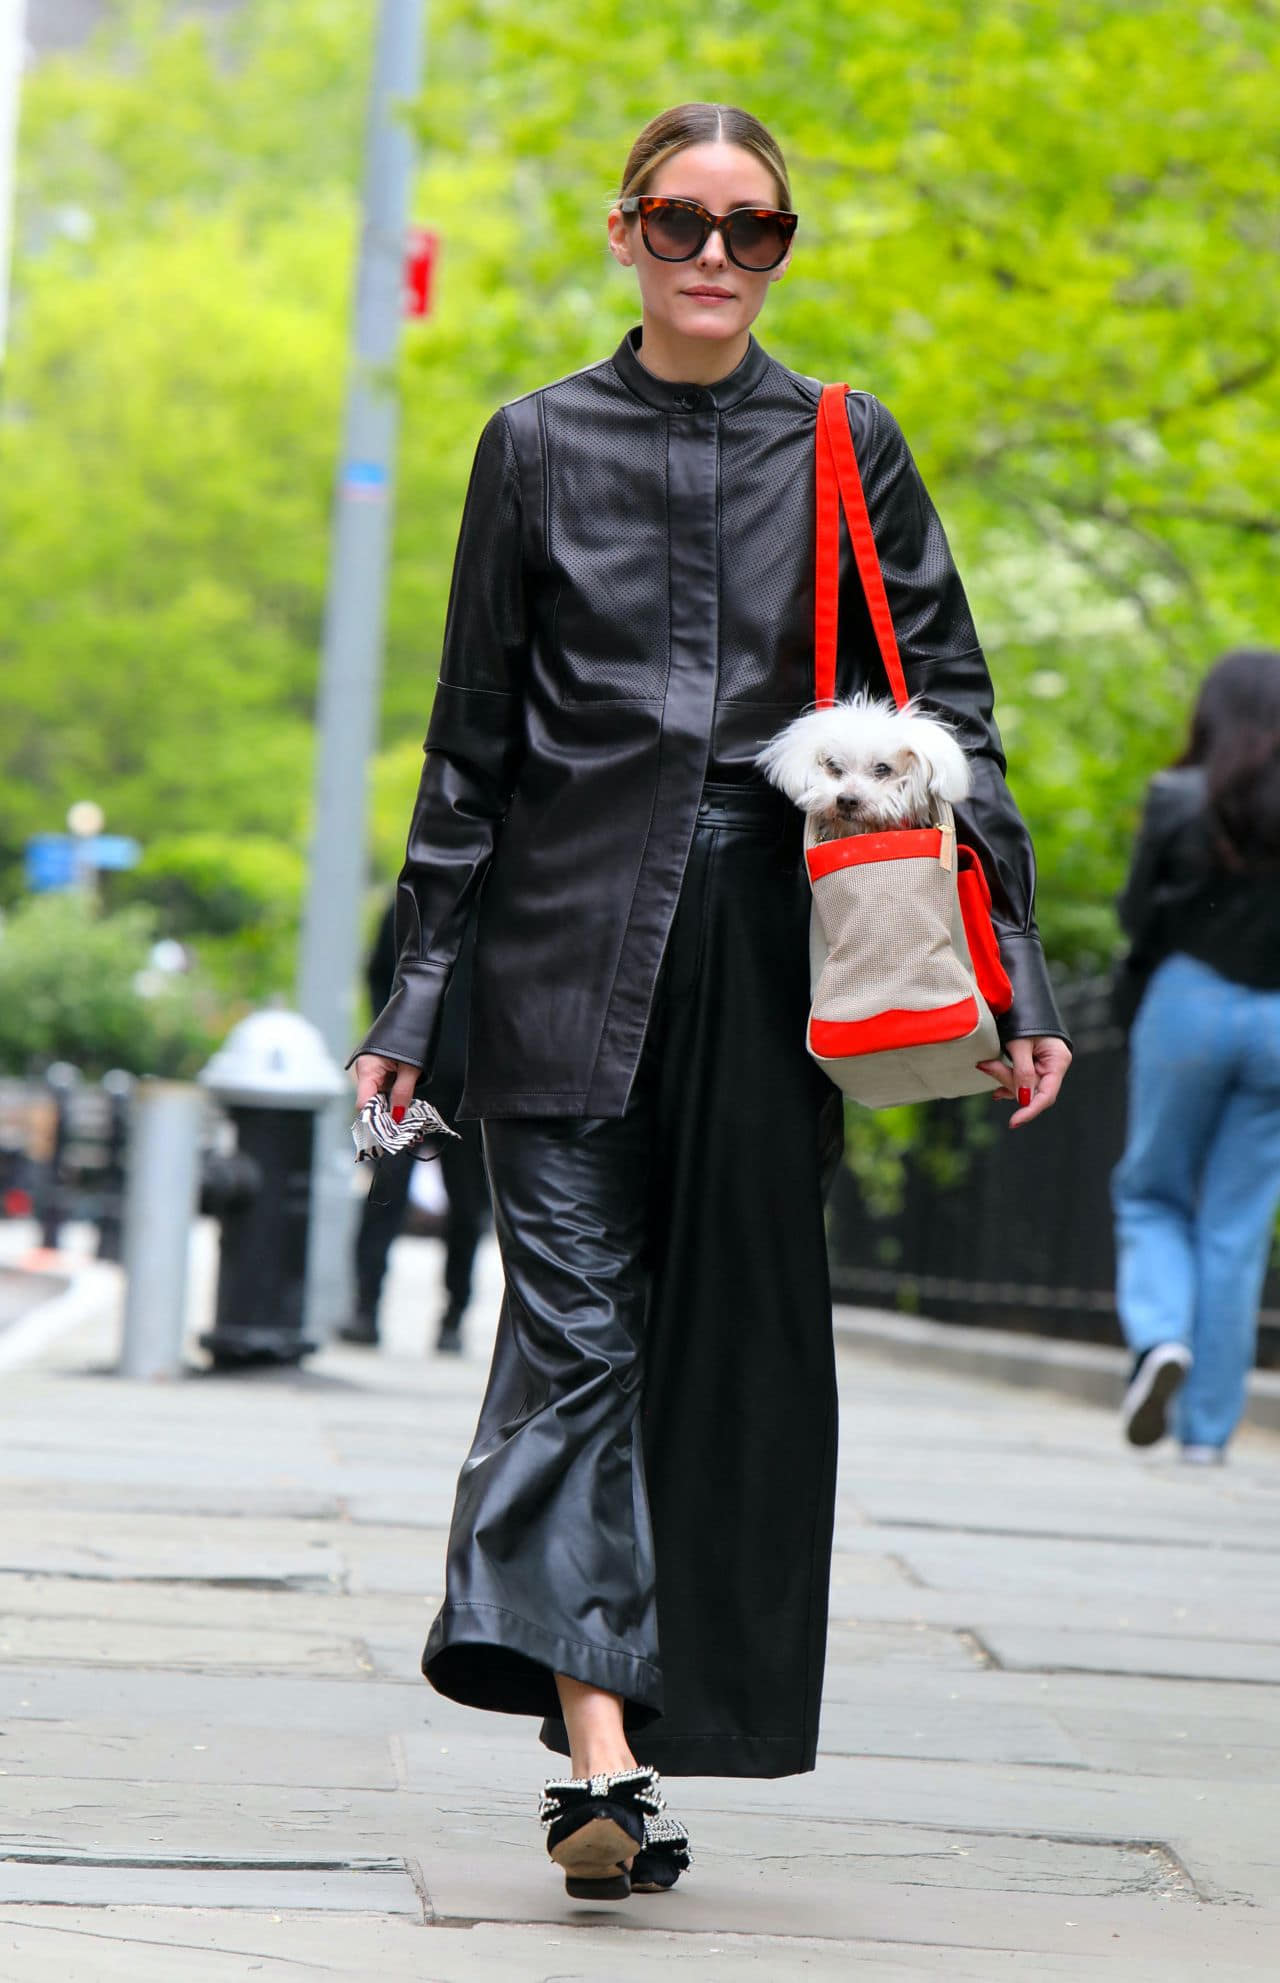 Olivia Palermo at the Park in Brooklyn with her Puppy